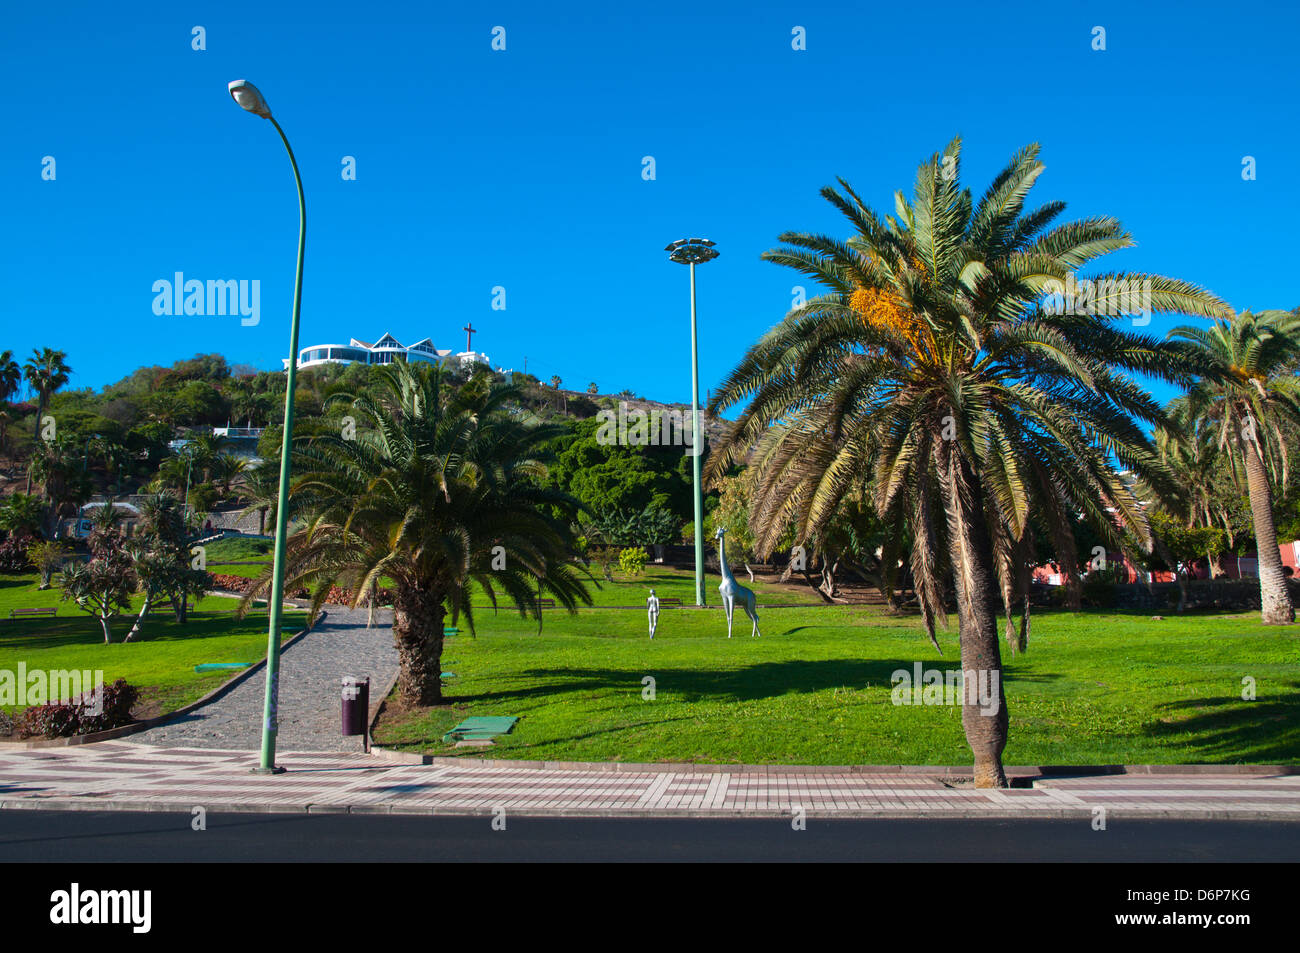 El Ciudad Jardin the Garden district Las Palmas de Gran Canaria city Gran Canaria island the Canary Islands Spain - Stock Image